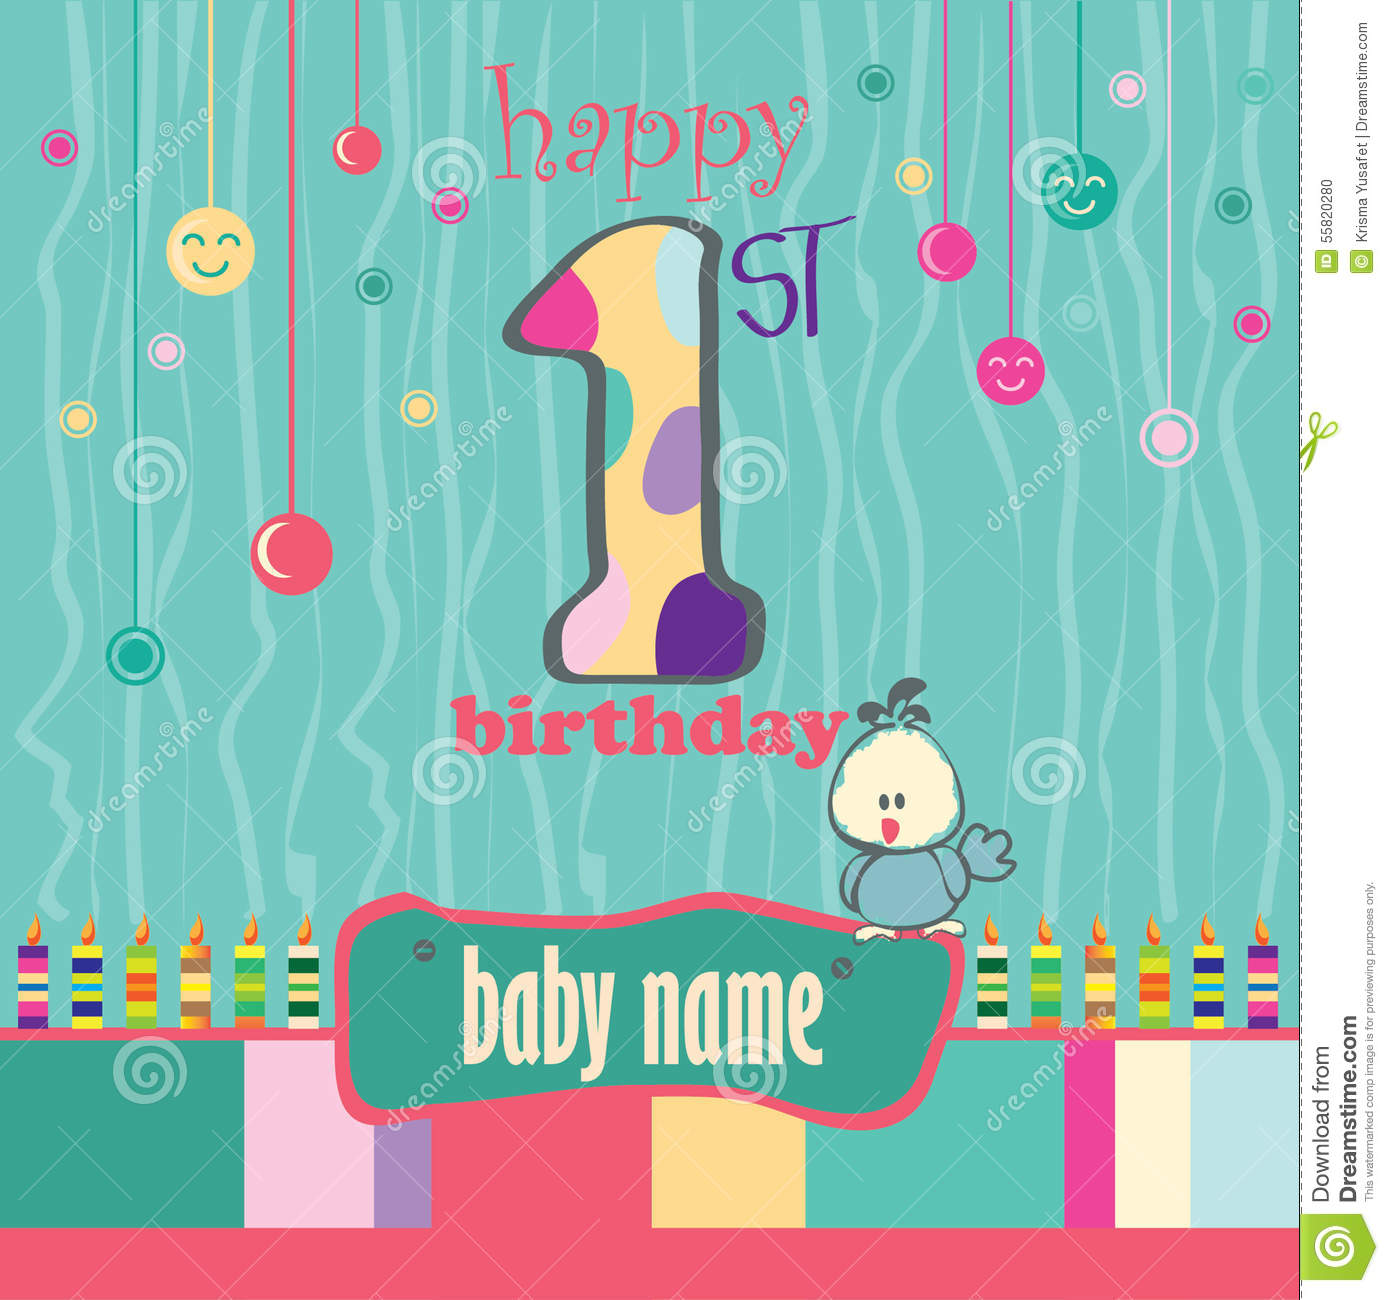 1st birthday card wishes ; st-birthday-greeting-card-baby-55820280